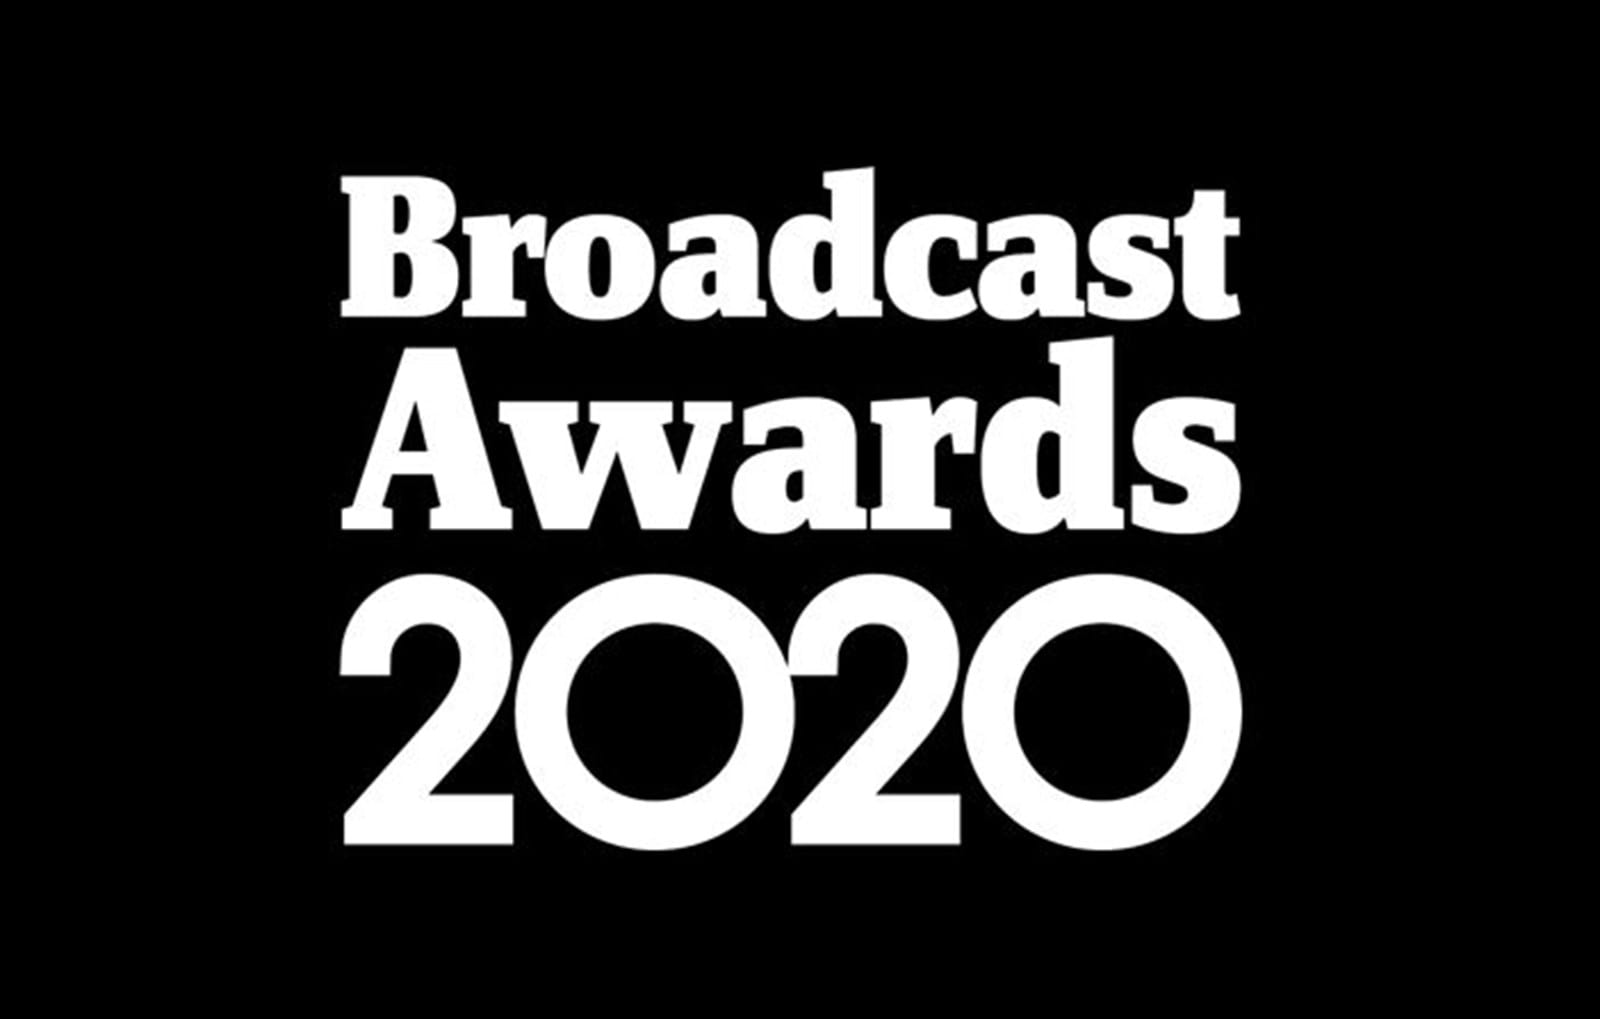 Shortlist success for Firecracker Films and Sunset+Vine at 2020 Broadcast Awards